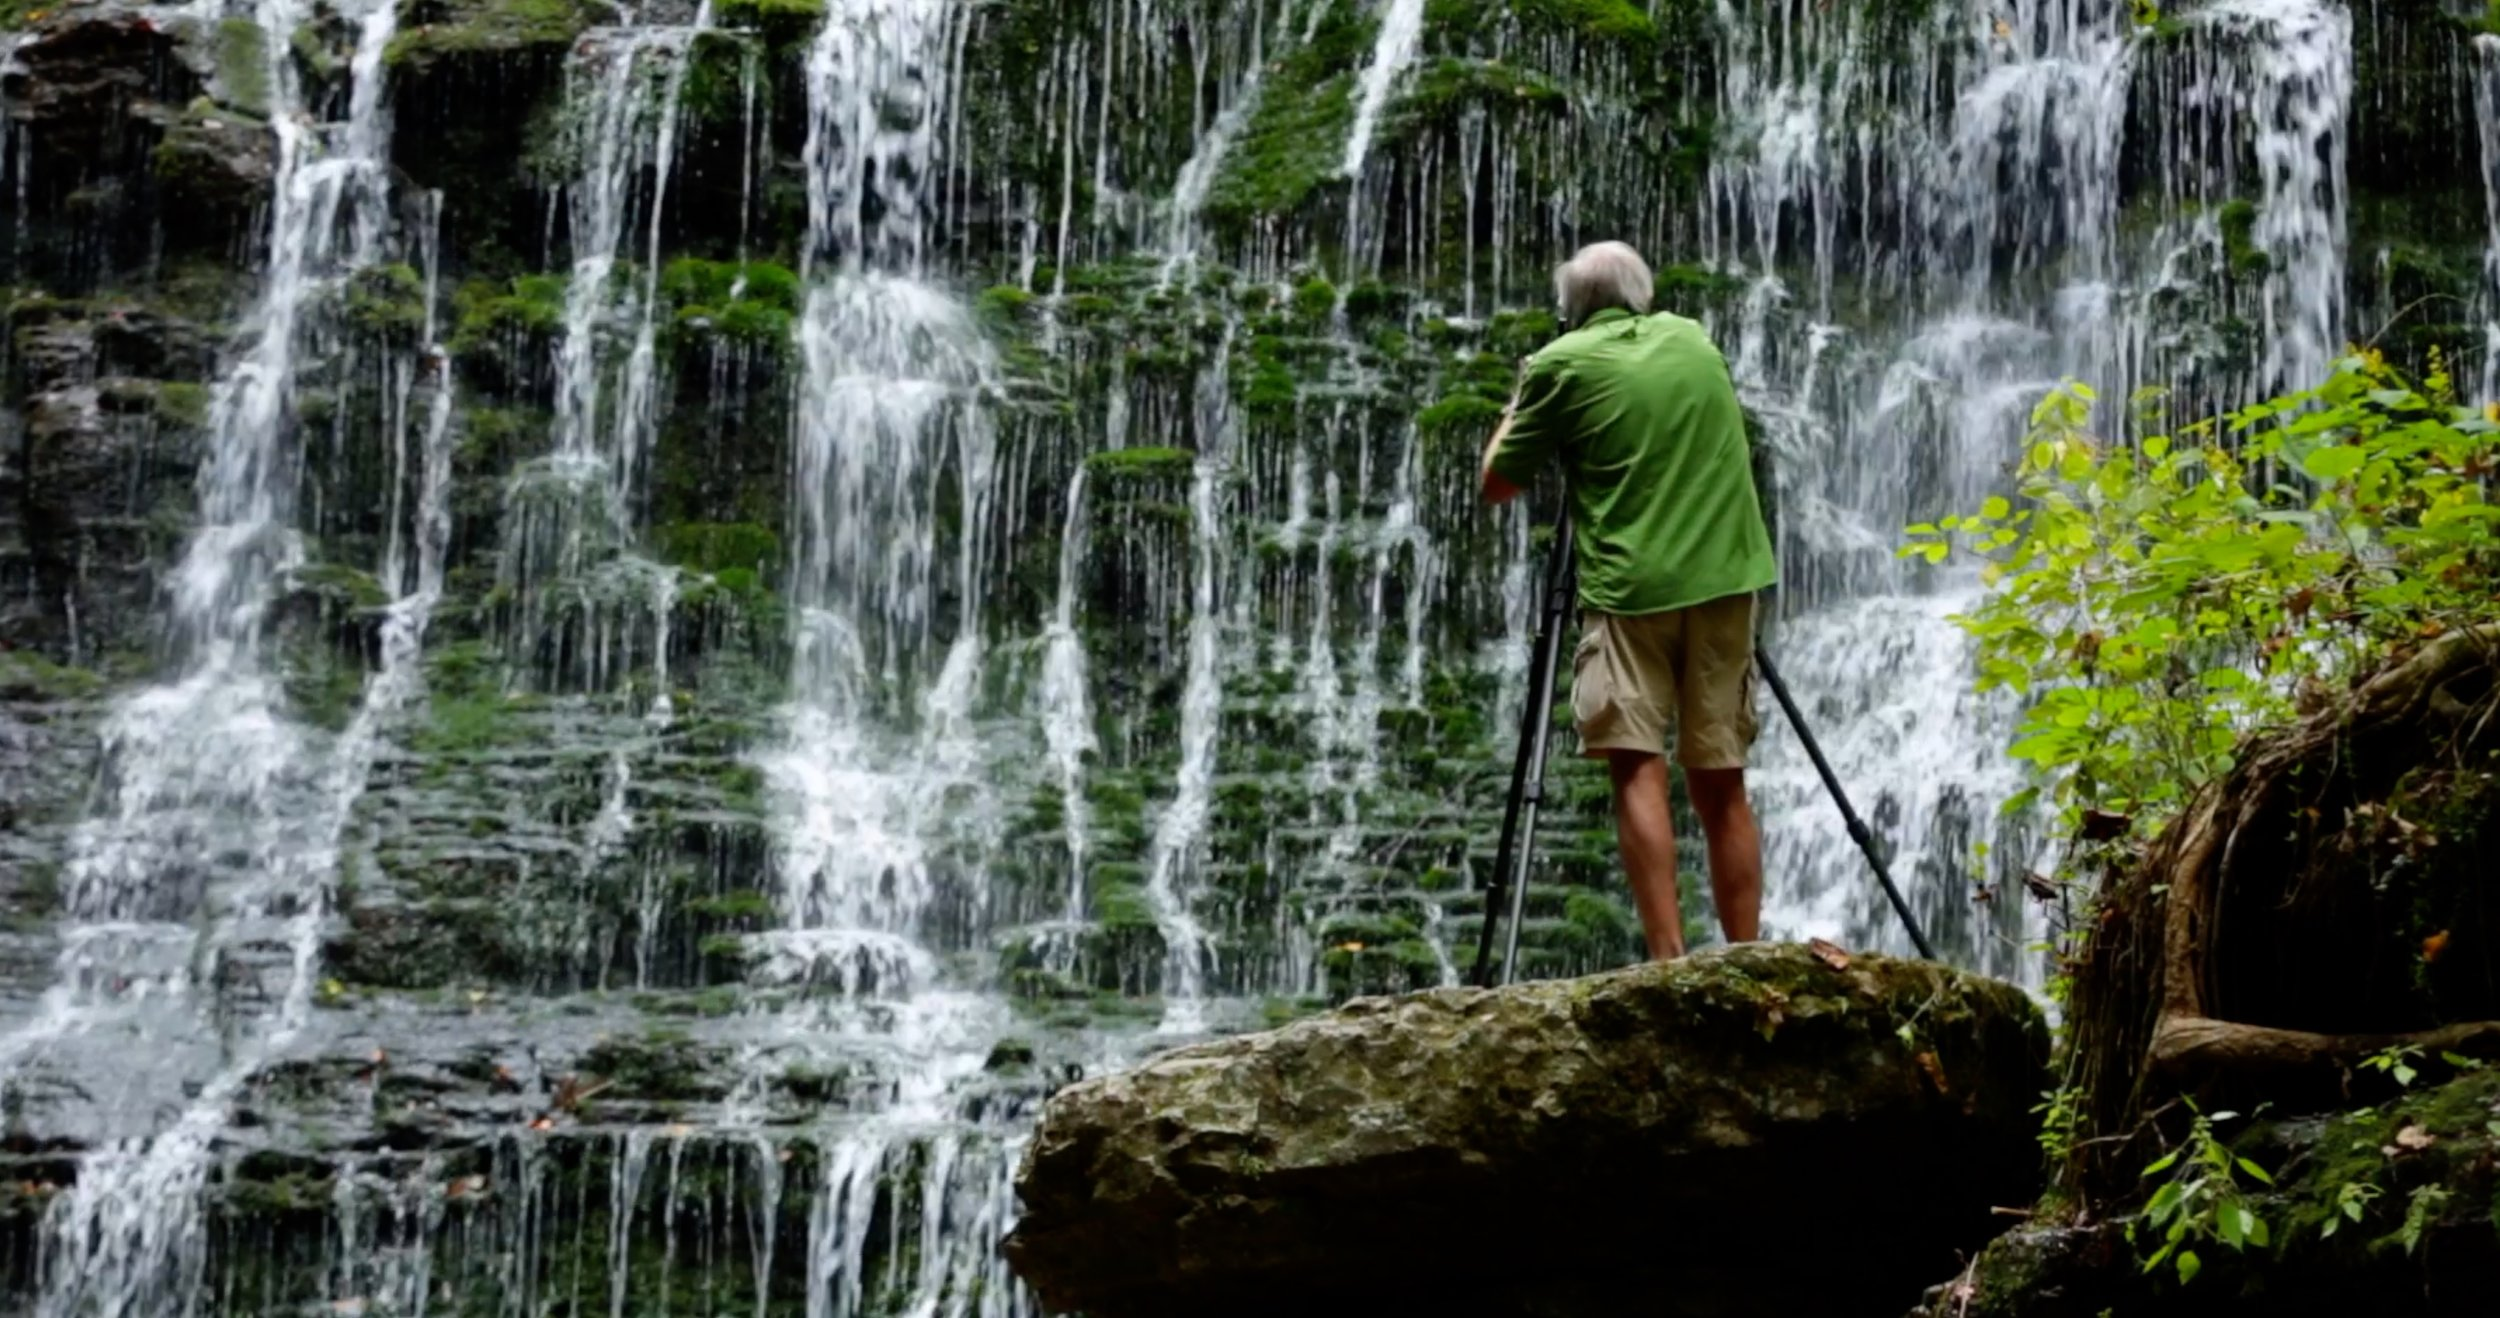 Byron Jorjorian at Machine Falls in Tennessee.  We are currently in development of a feature length film about the work of nature preservation through the art of fine art photography with one of America's premiere Nature photographers.